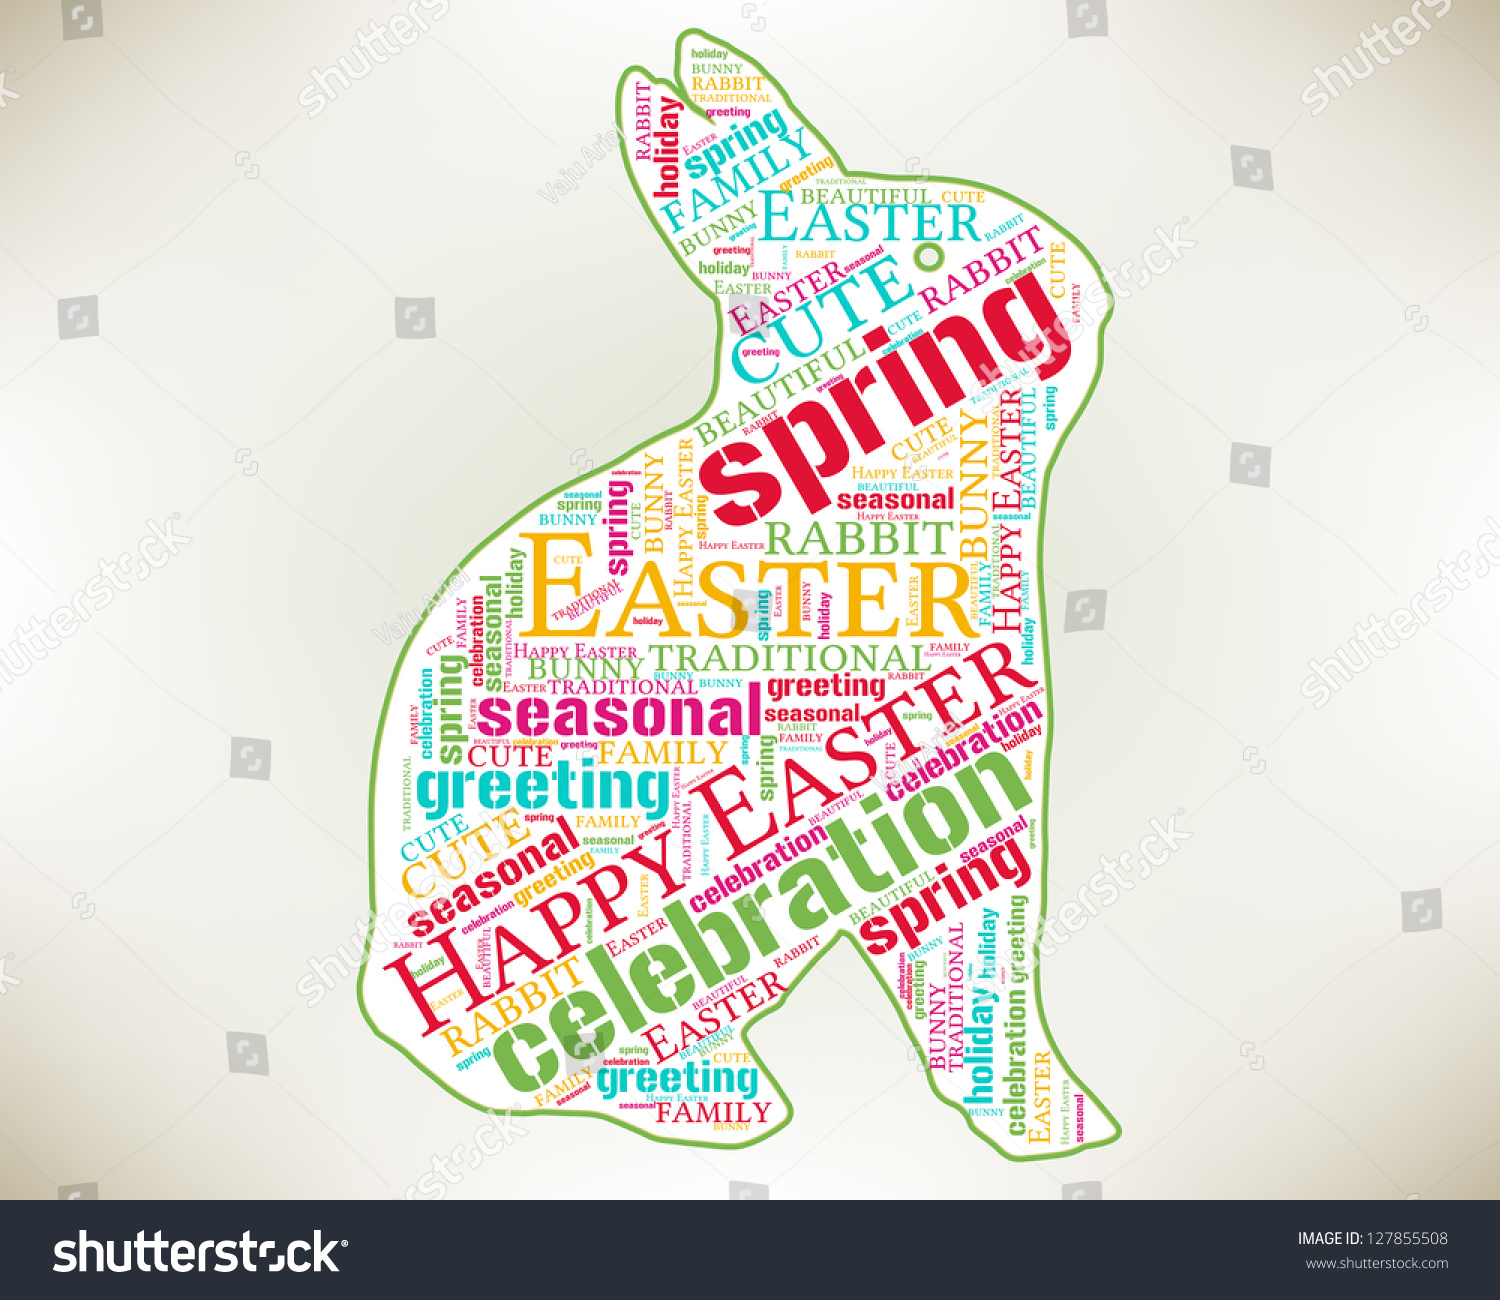 Happy easter word cloud concept bunny stock illustration 127855508 happy easter word cloud concept with bunny rabbit silhouette season greetings word cloud tag m4hsunfo